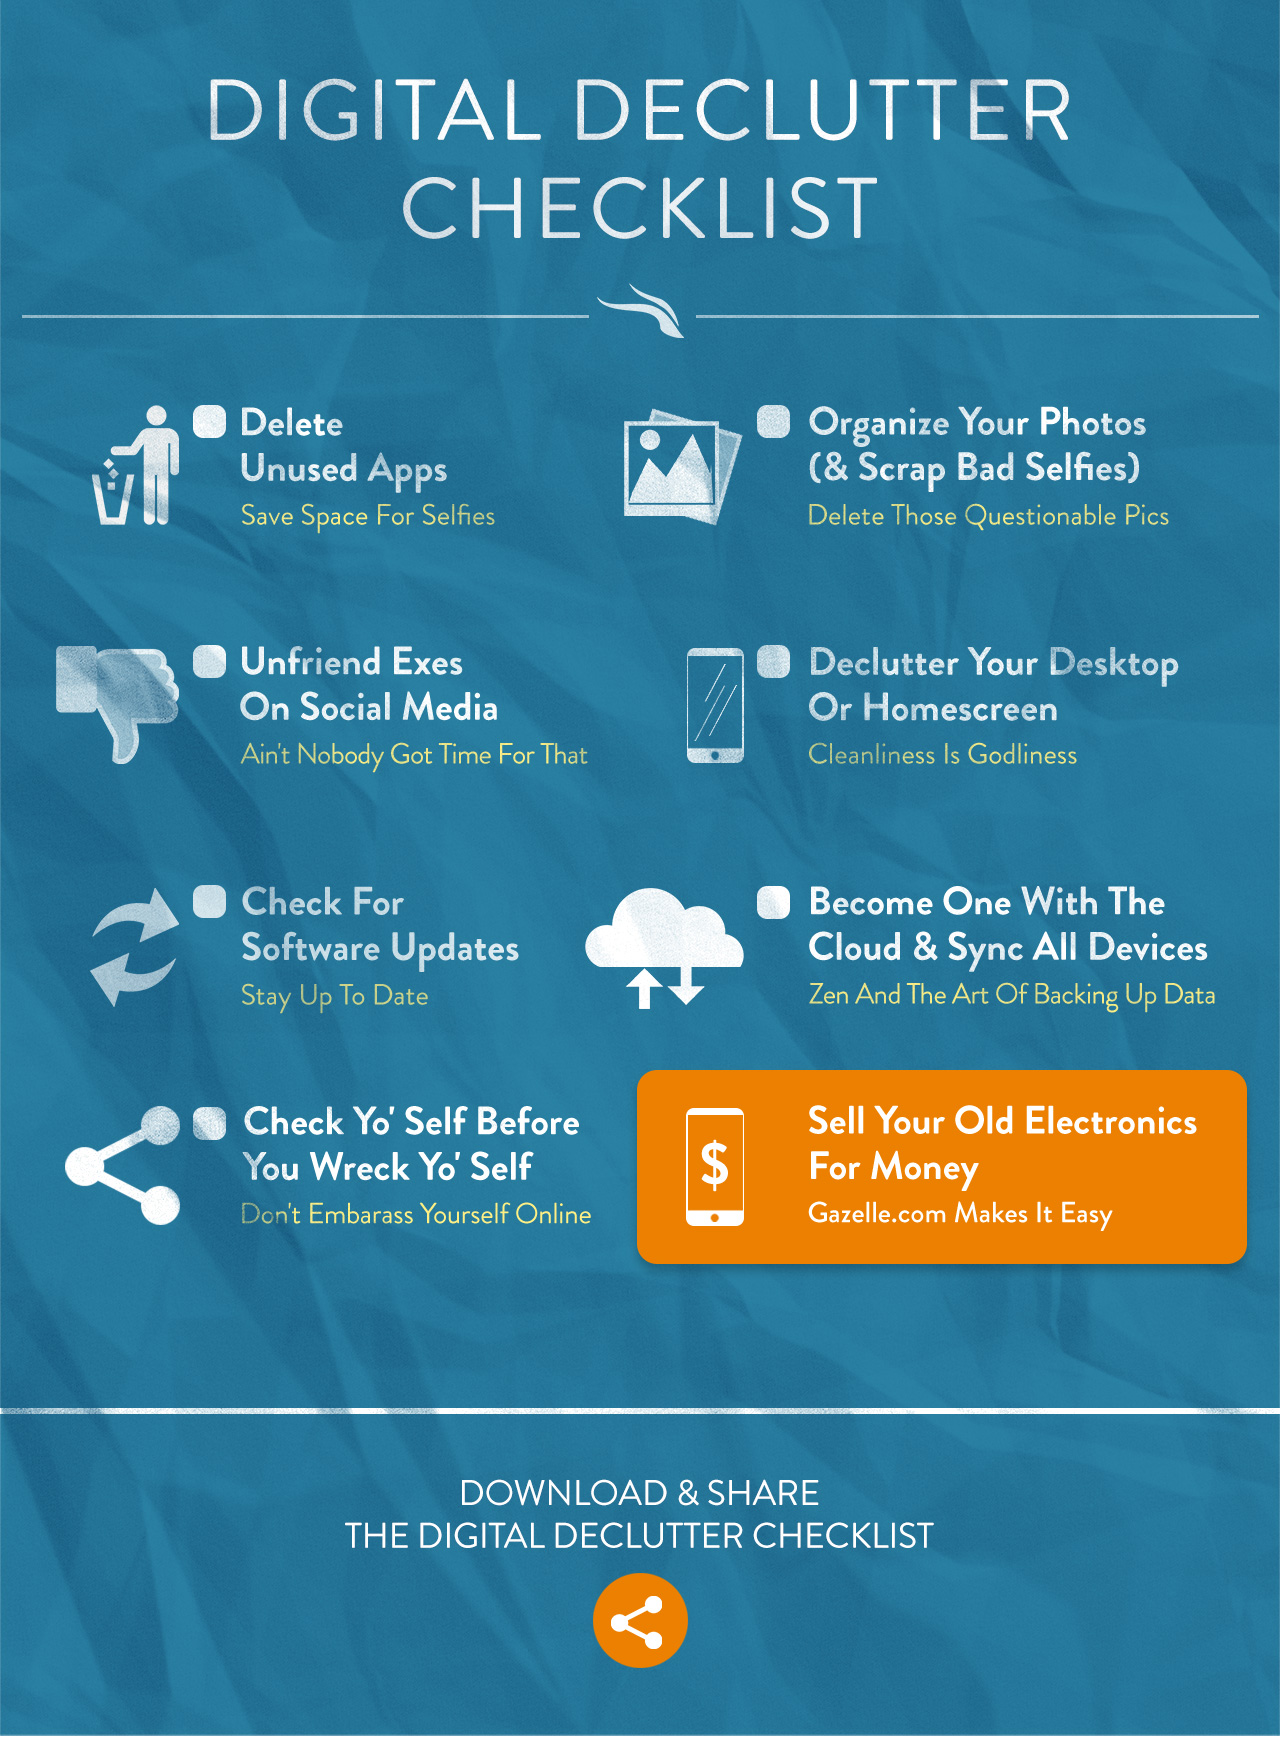 8 Simple Ways To Declutter Your Digital Life Gazelle The